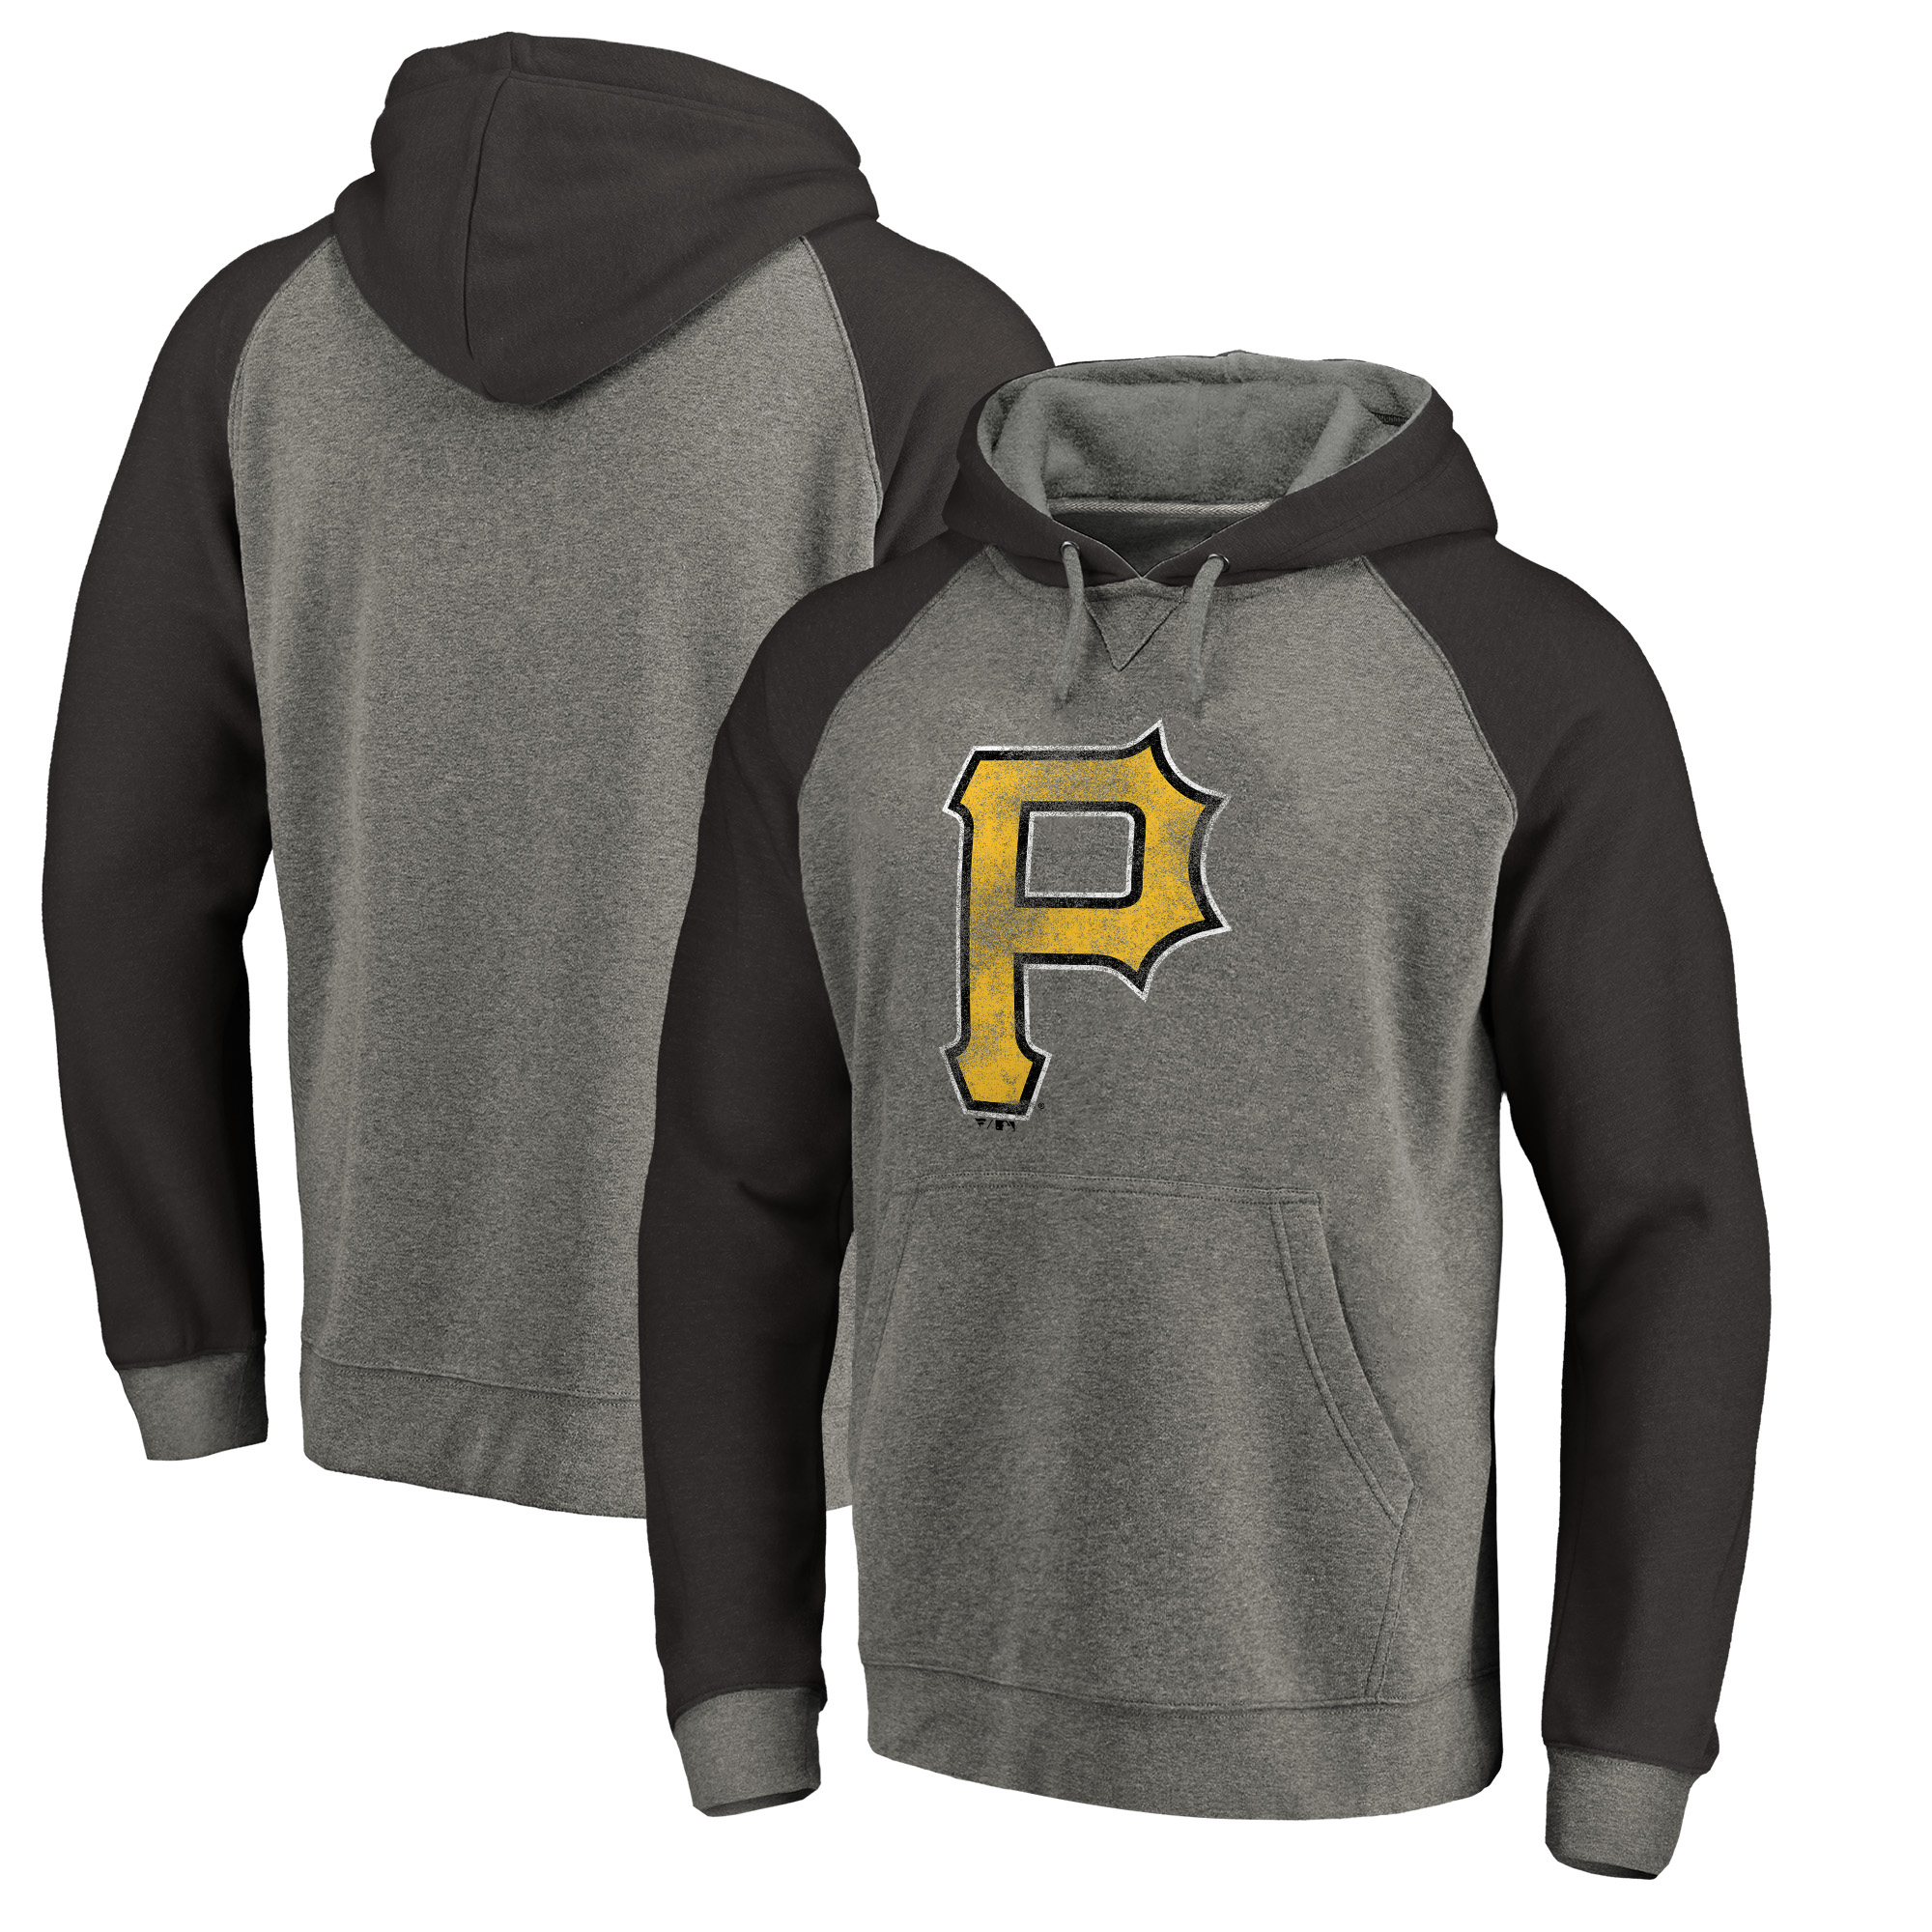 Pittsburgh Pirates Fanatics Branded Distressed Team Logo Tri-Blend Raglan Pullover Hoodie - Gray/Black